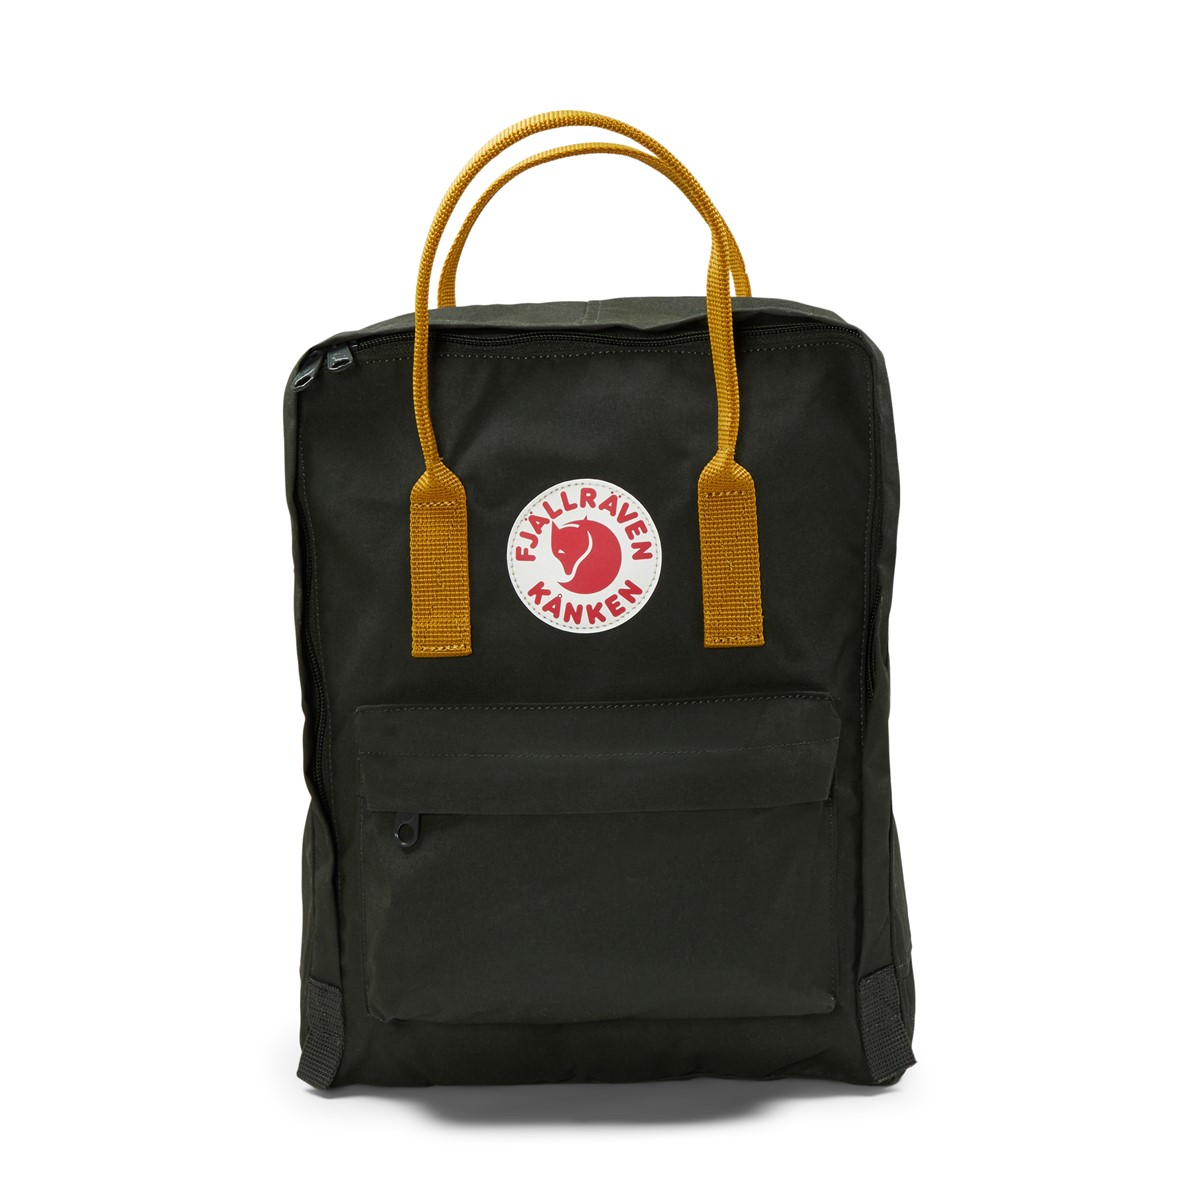 Kanken No. 2 Backpack in Dark Green